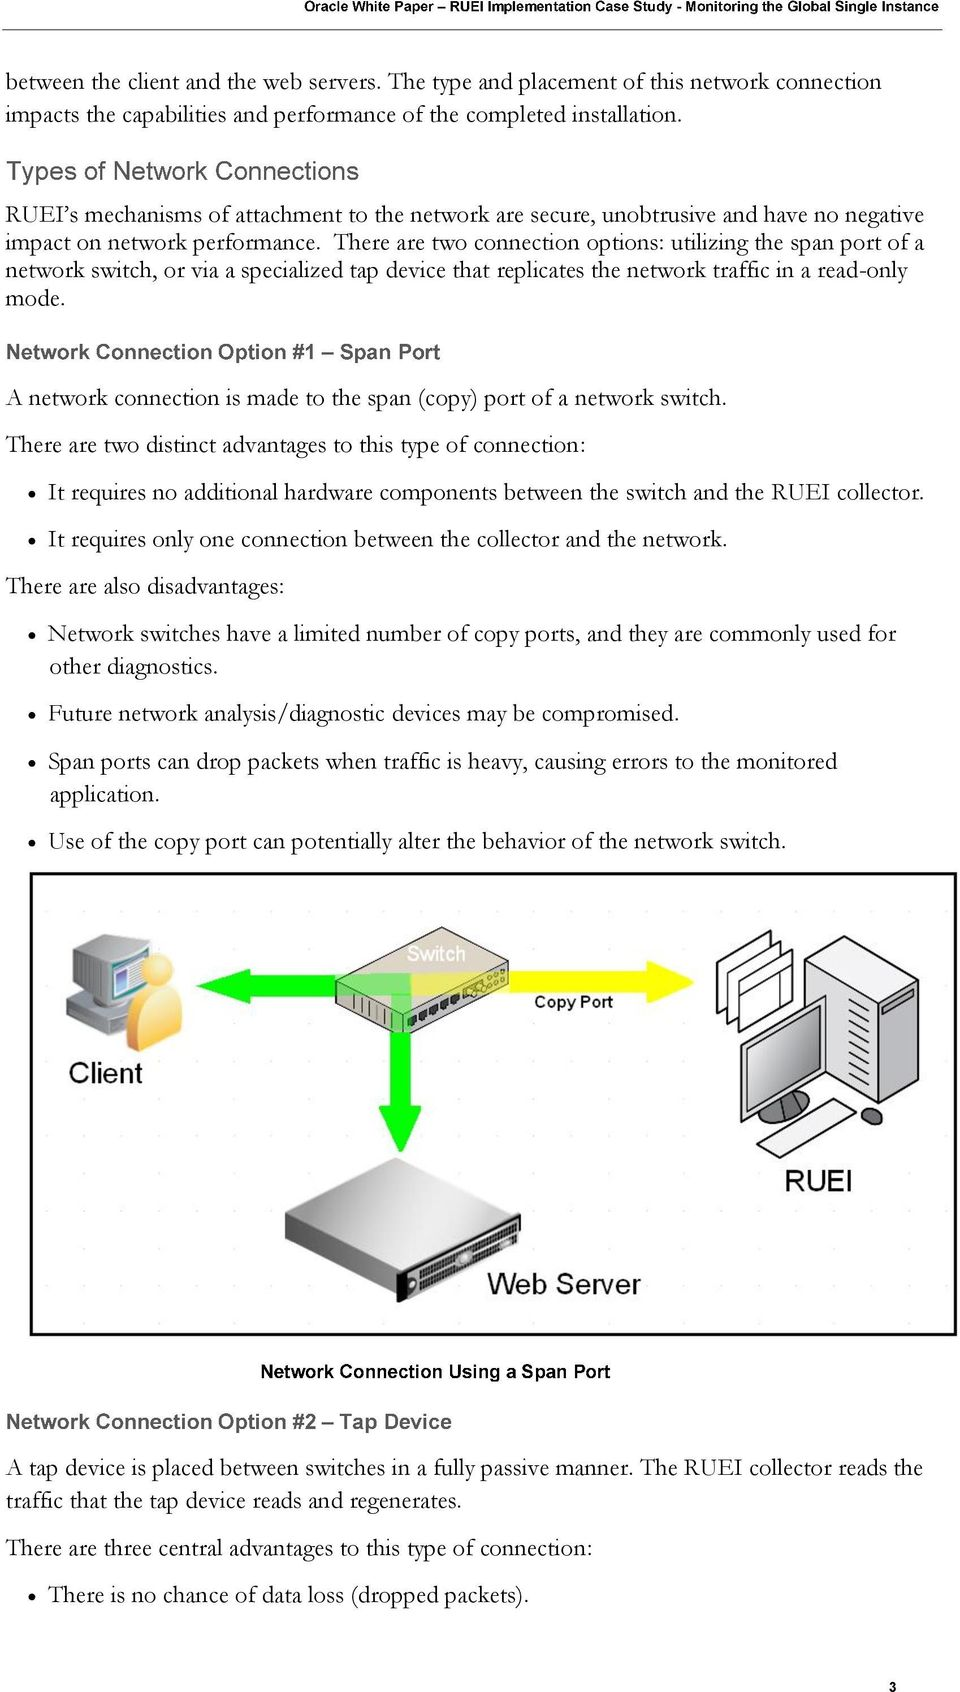 There are two connection options: utilizing the span port of a network switch, or via a specialized tap device that replicates the network traffic in a read-only mode.